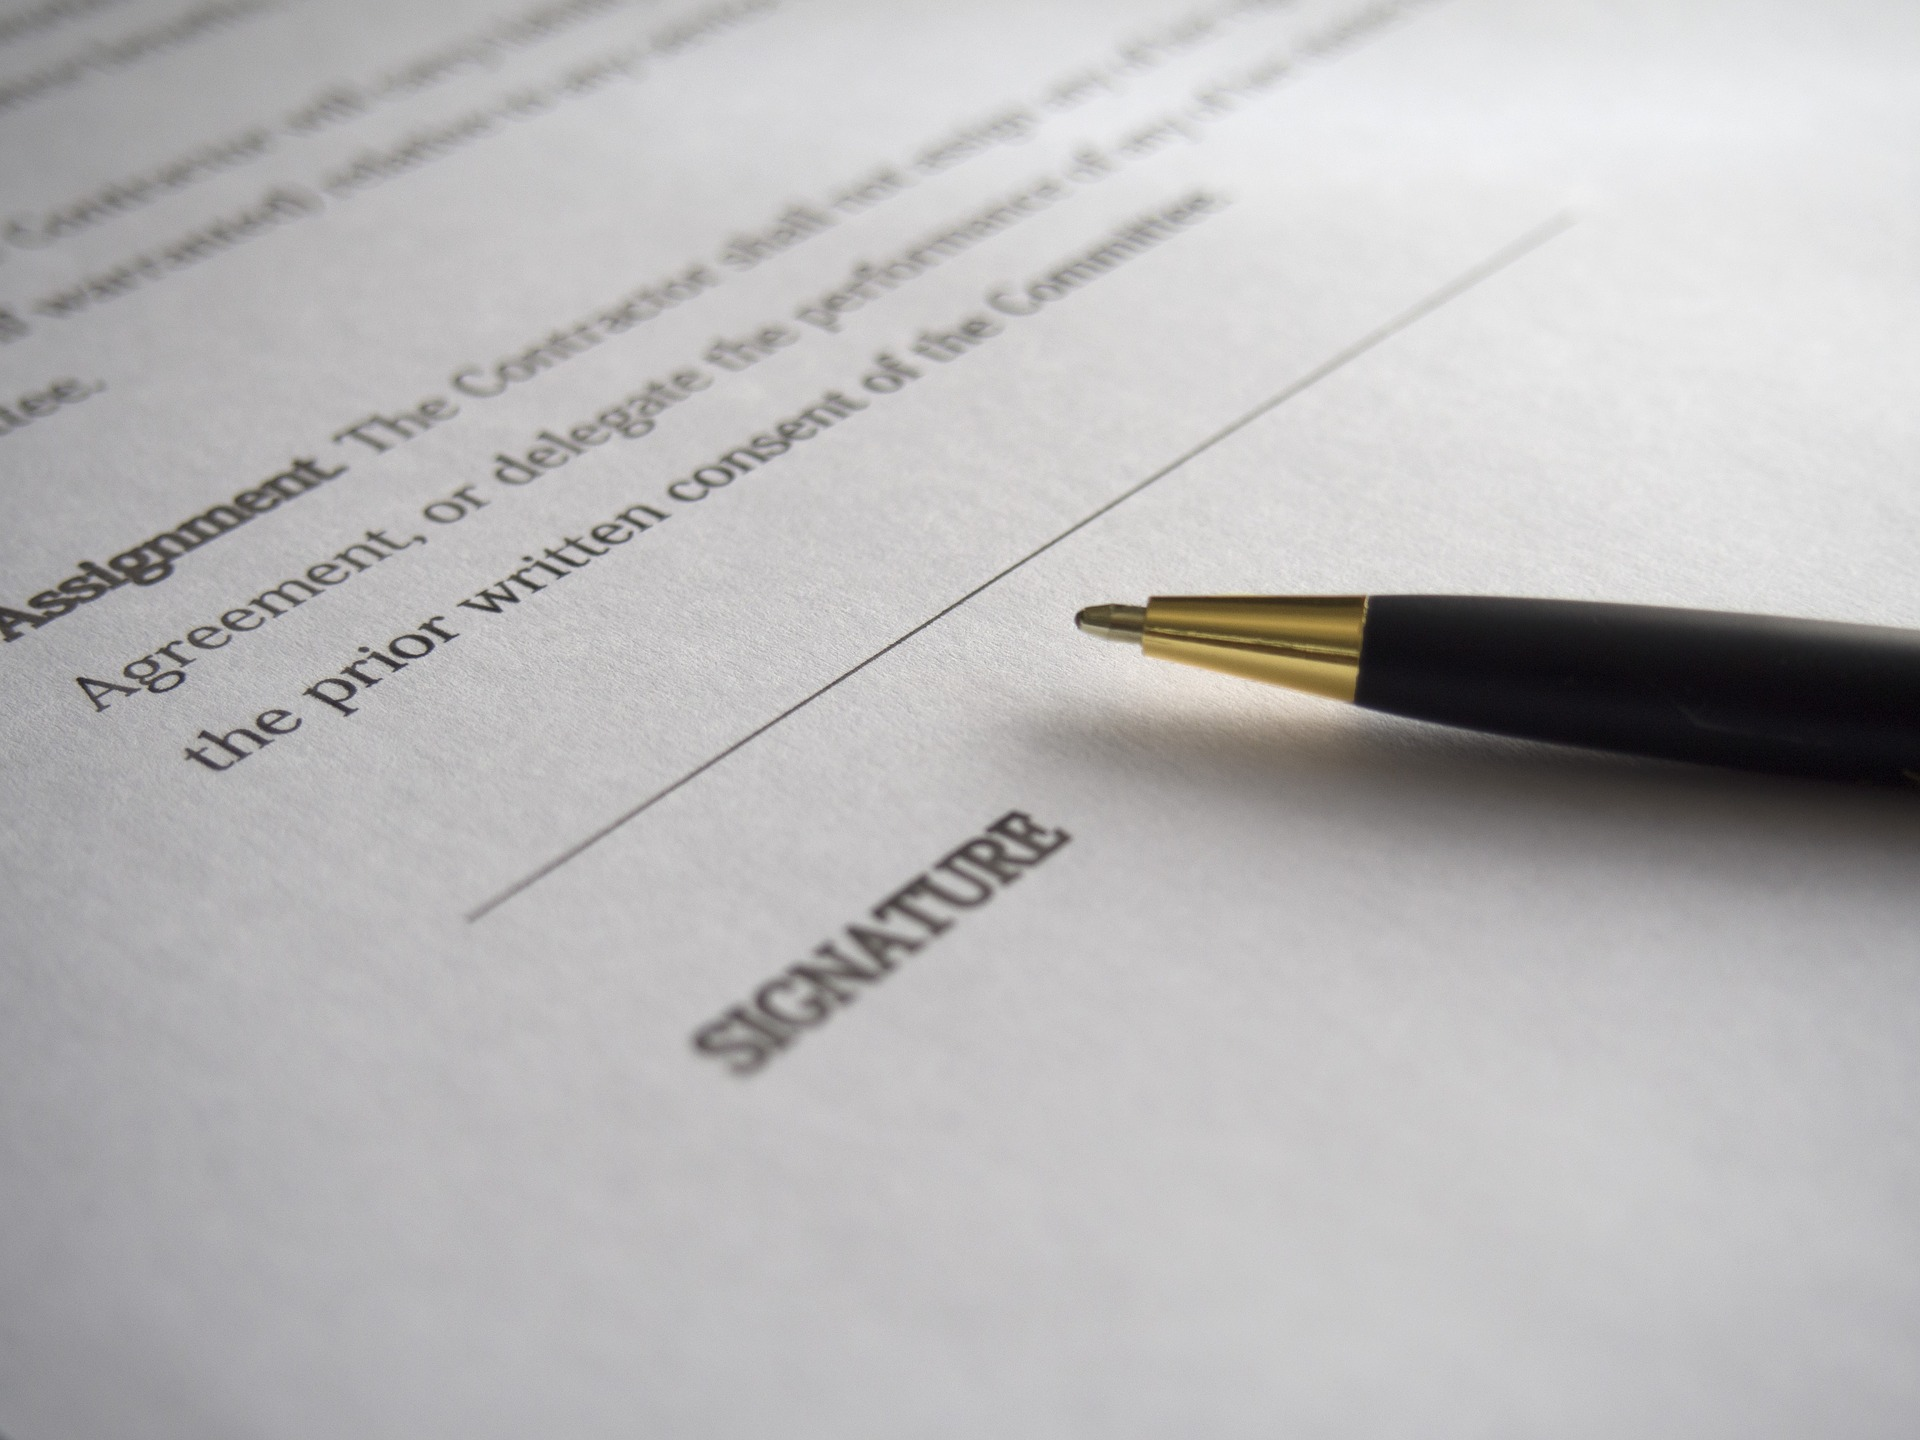 What To Do If Your Job Asks You To Sign a COVID-19 Liability Waiver Upon Returning to Work